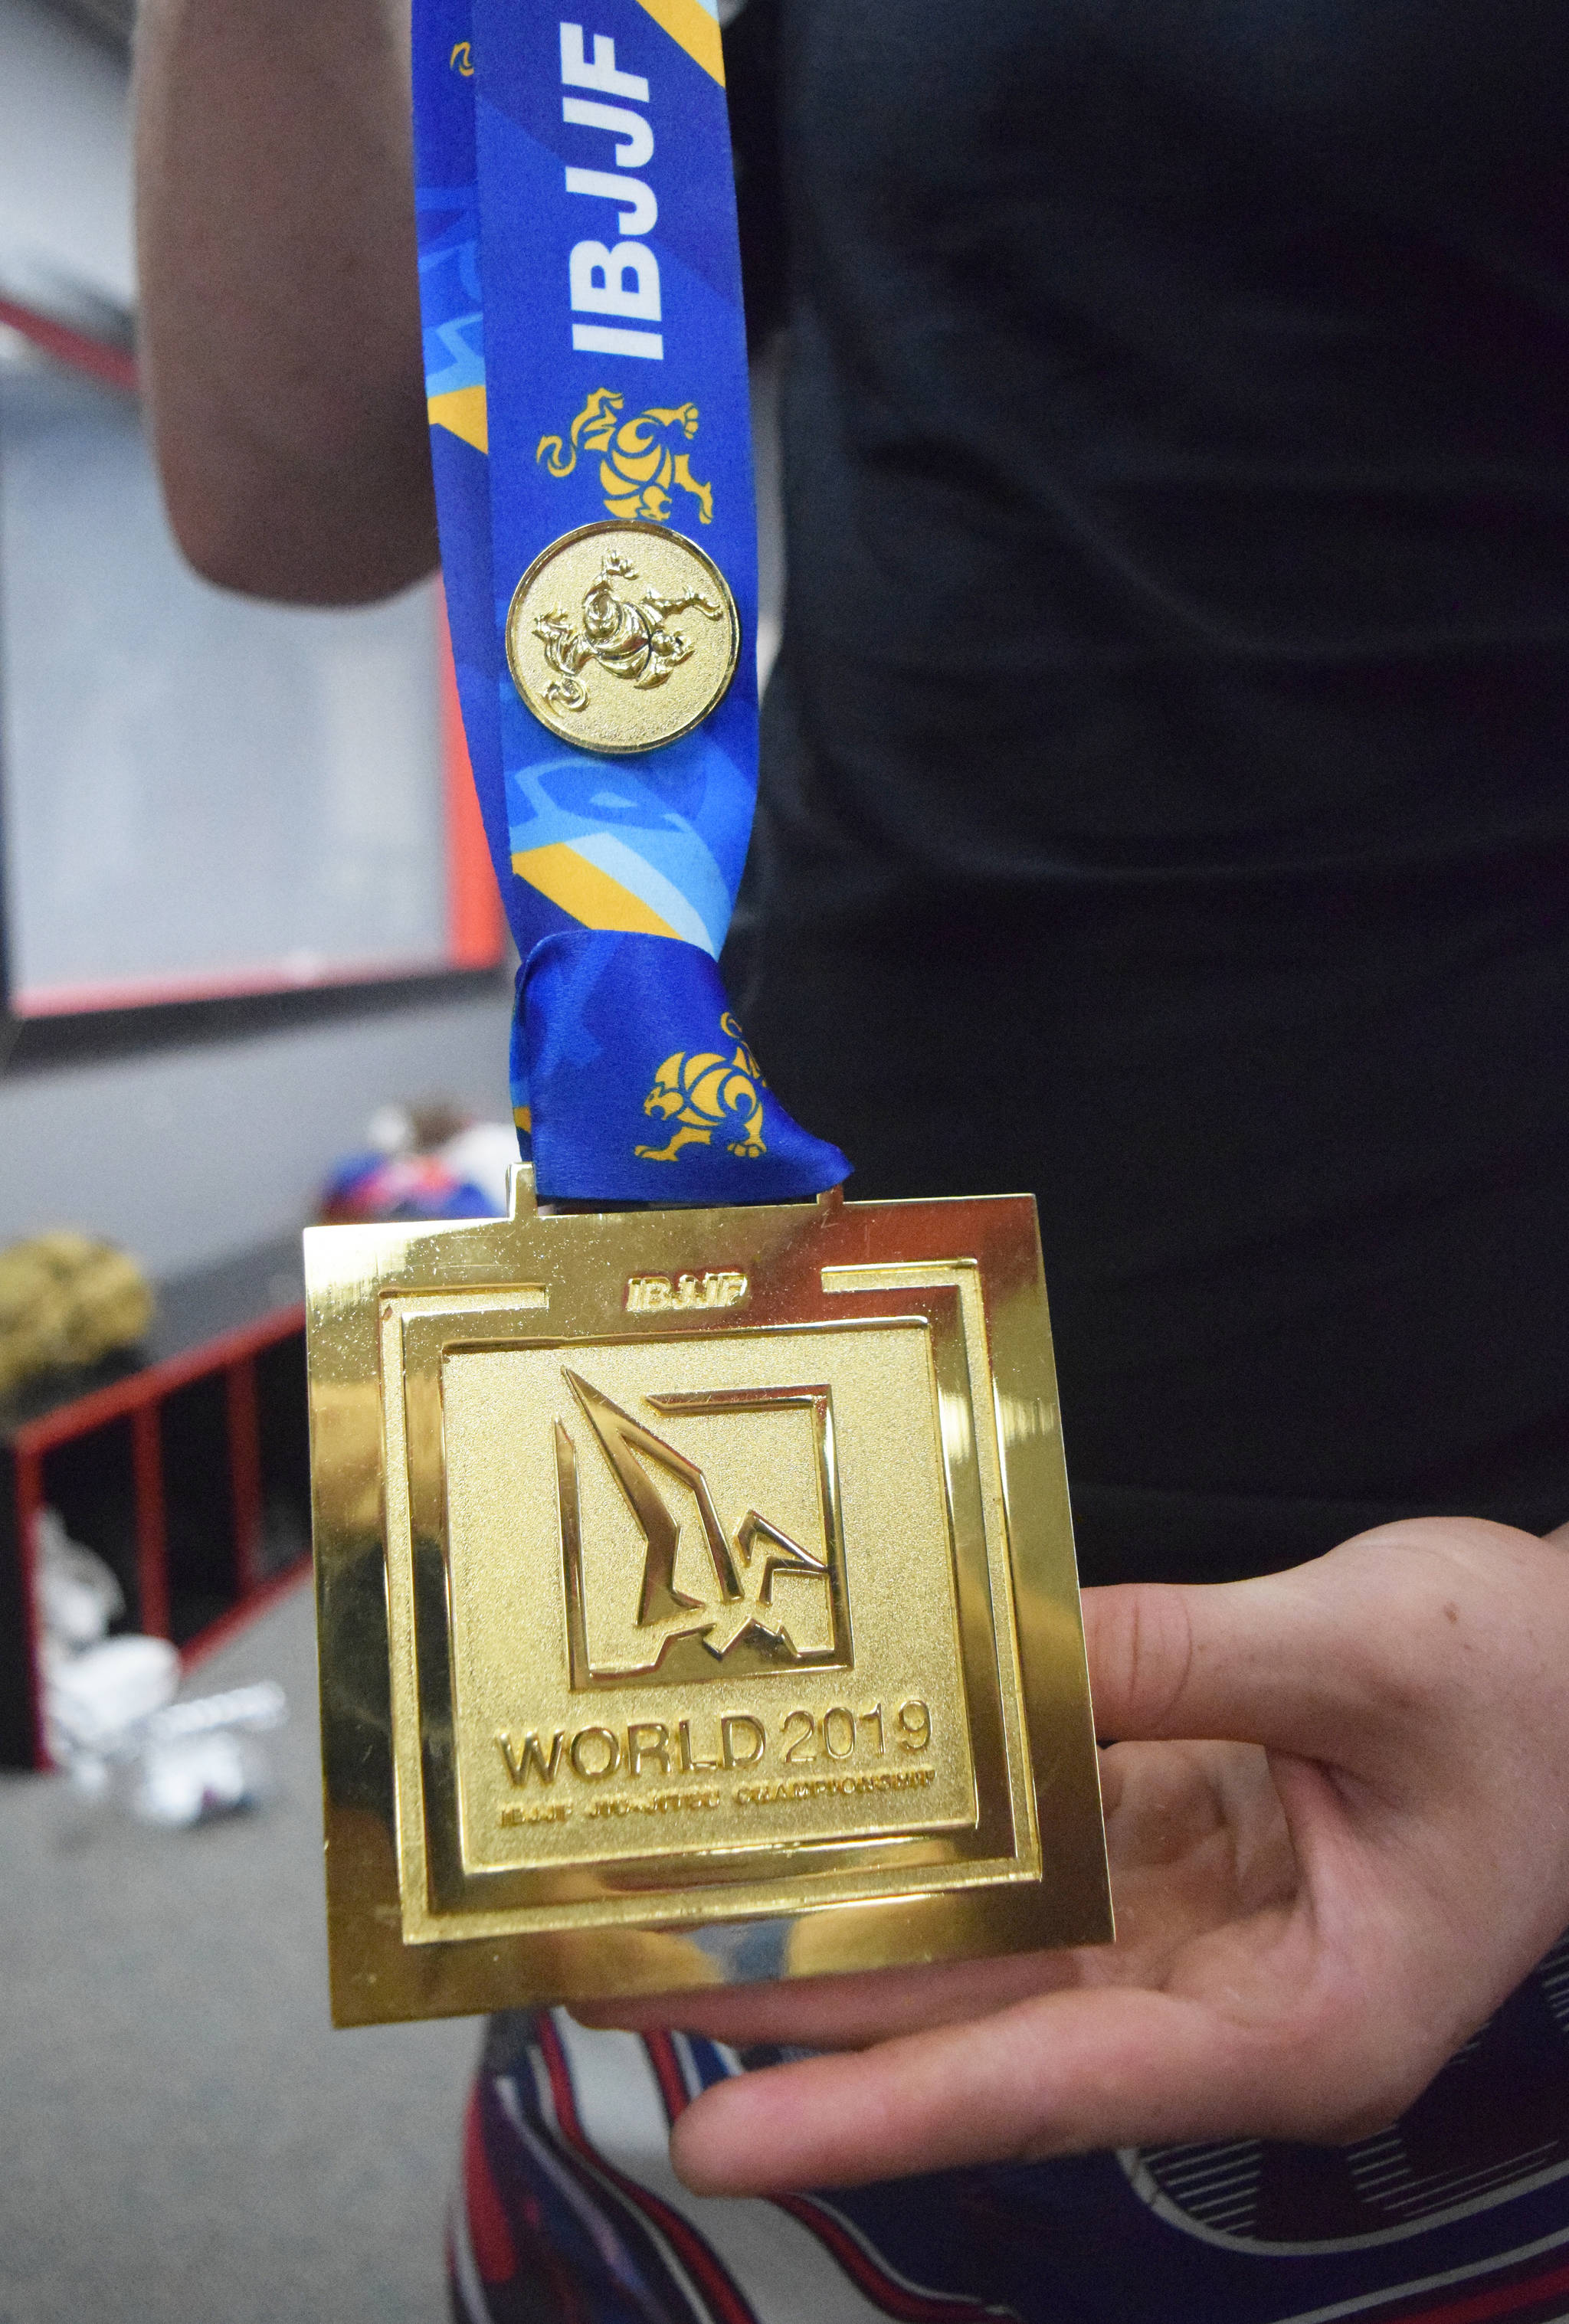 Soldotna's Sean Babitt shows off the first-place medal he won at the IBJJF World Championships June 1 in Long Beach, California. (Photo by Joey Klecka/Peninsula Clarion)